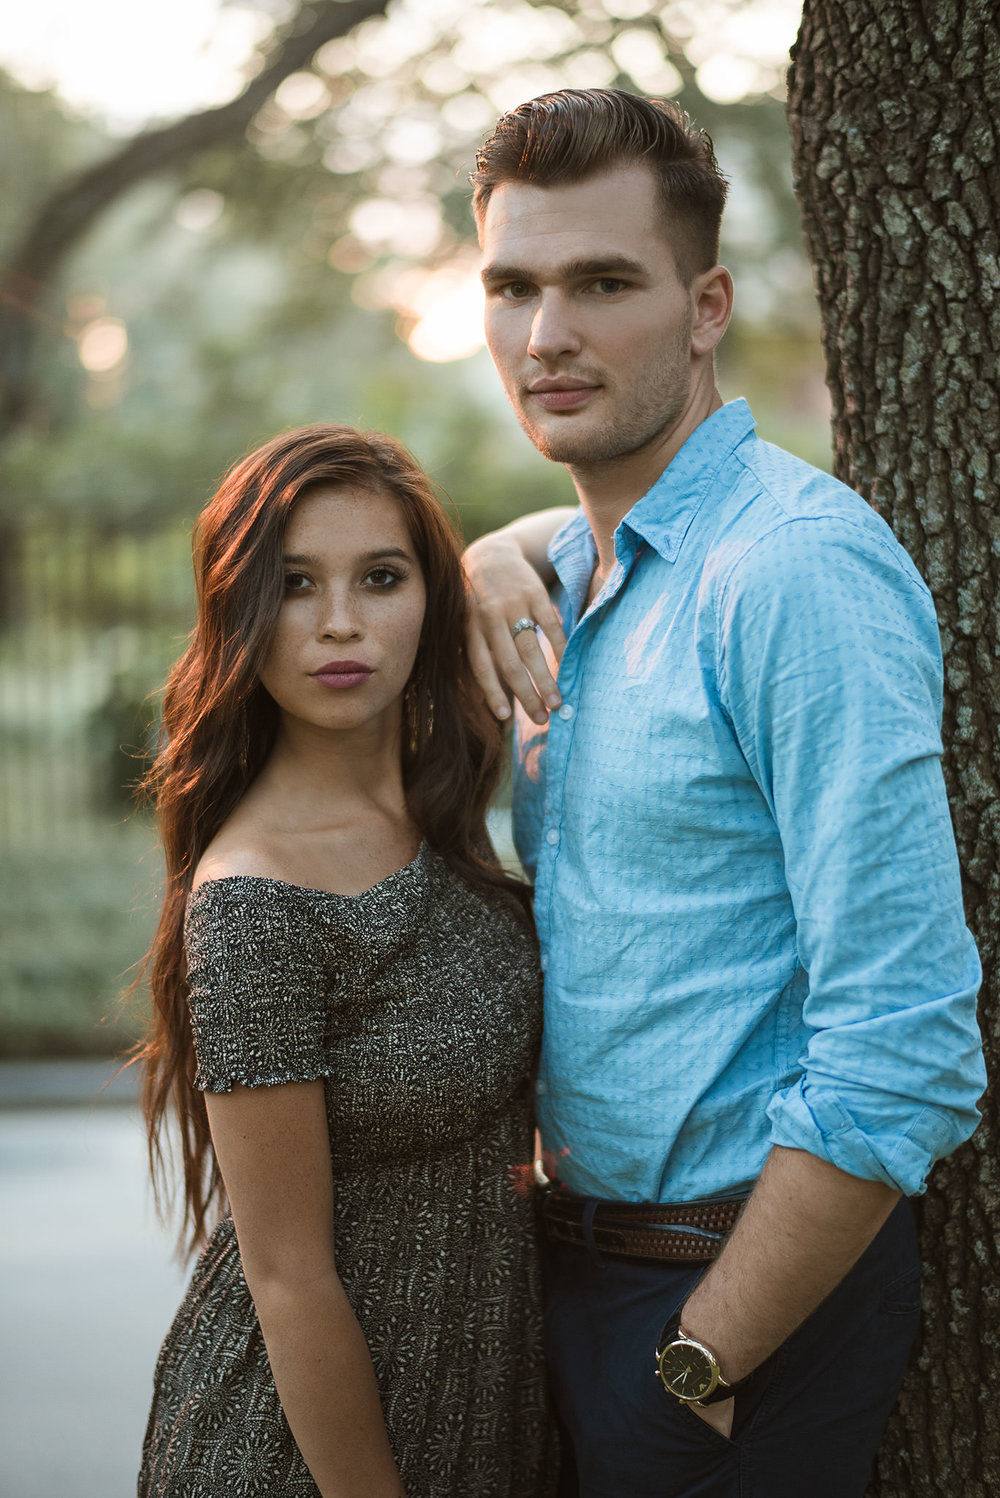 houston-austin-romantic-destination-outdoor-engagement-photo-session-hermann-park